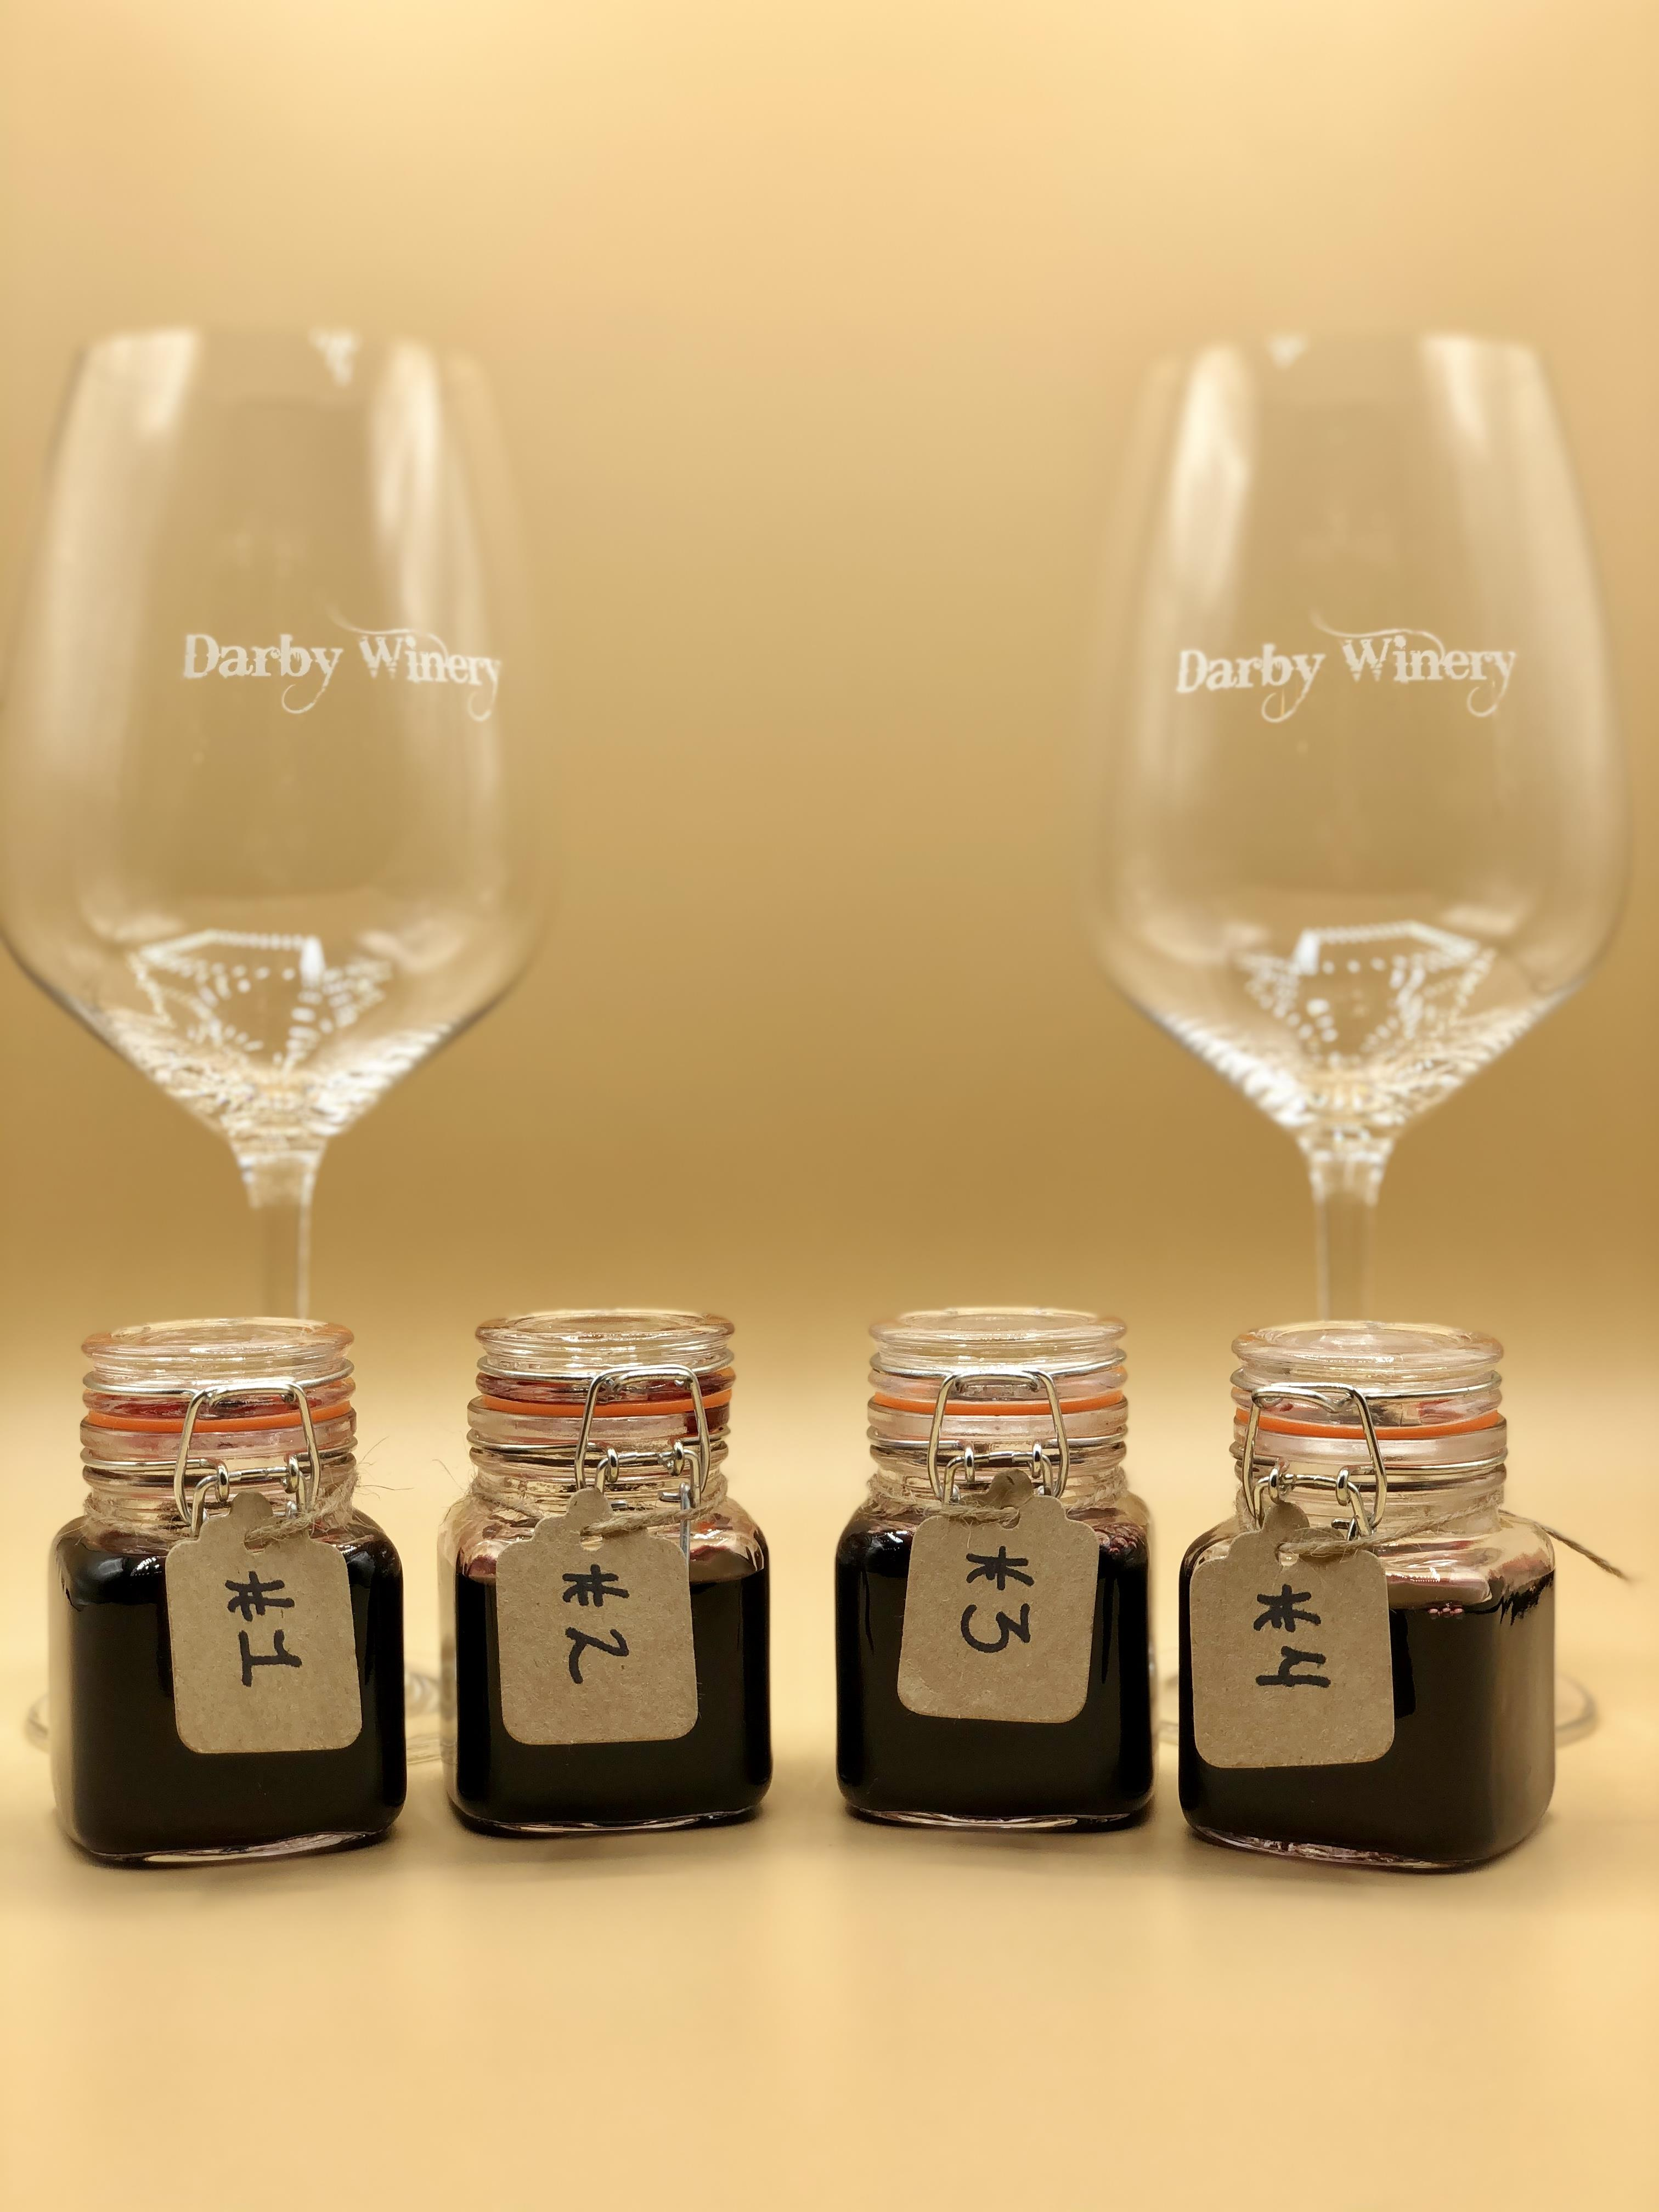 Darby At Home Tasting Kit With Glasses